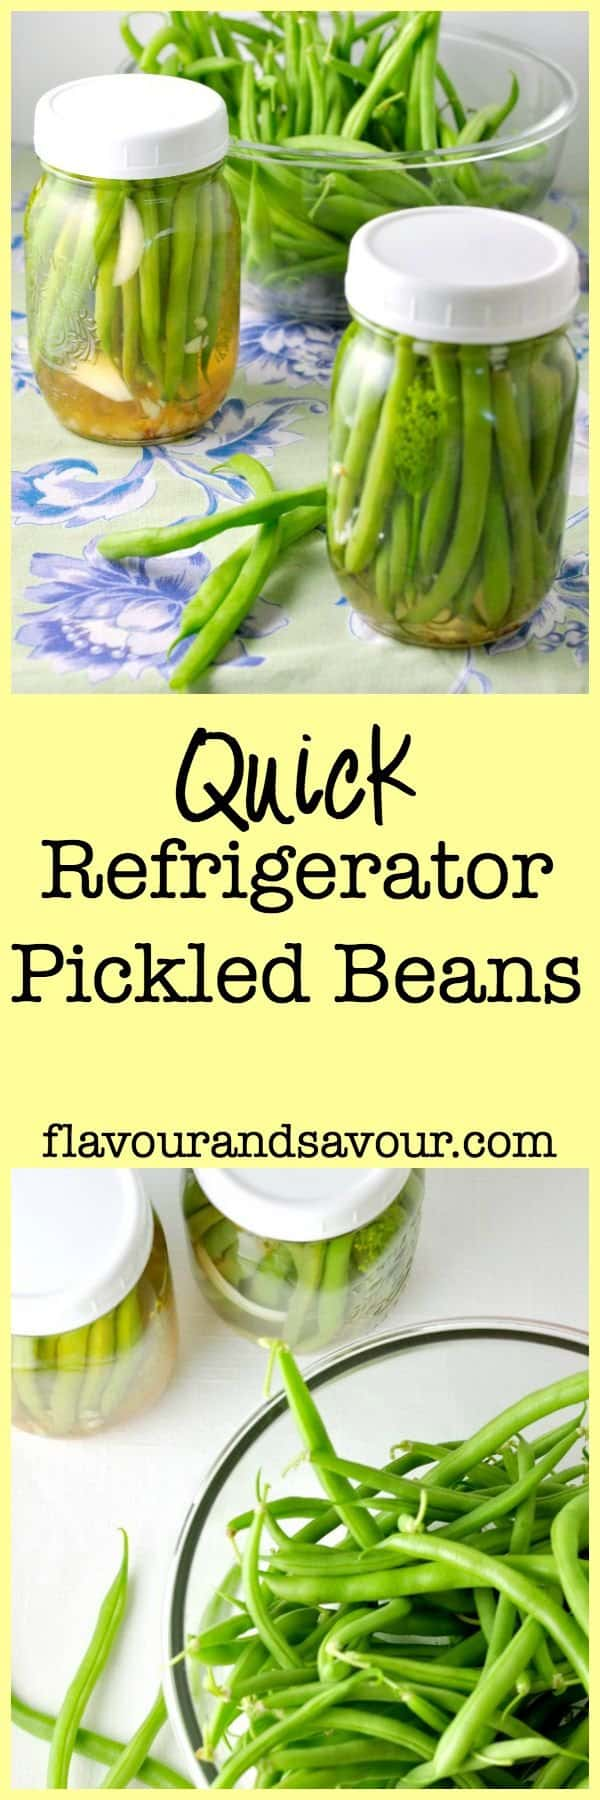 Quick Refrigerator Pickled Beans. If you've never made pickles before, here's an easy way to get started. Great as a garnish for Caesar cocktails, as a side dish or just as a snack. If I can make them, anyone can!